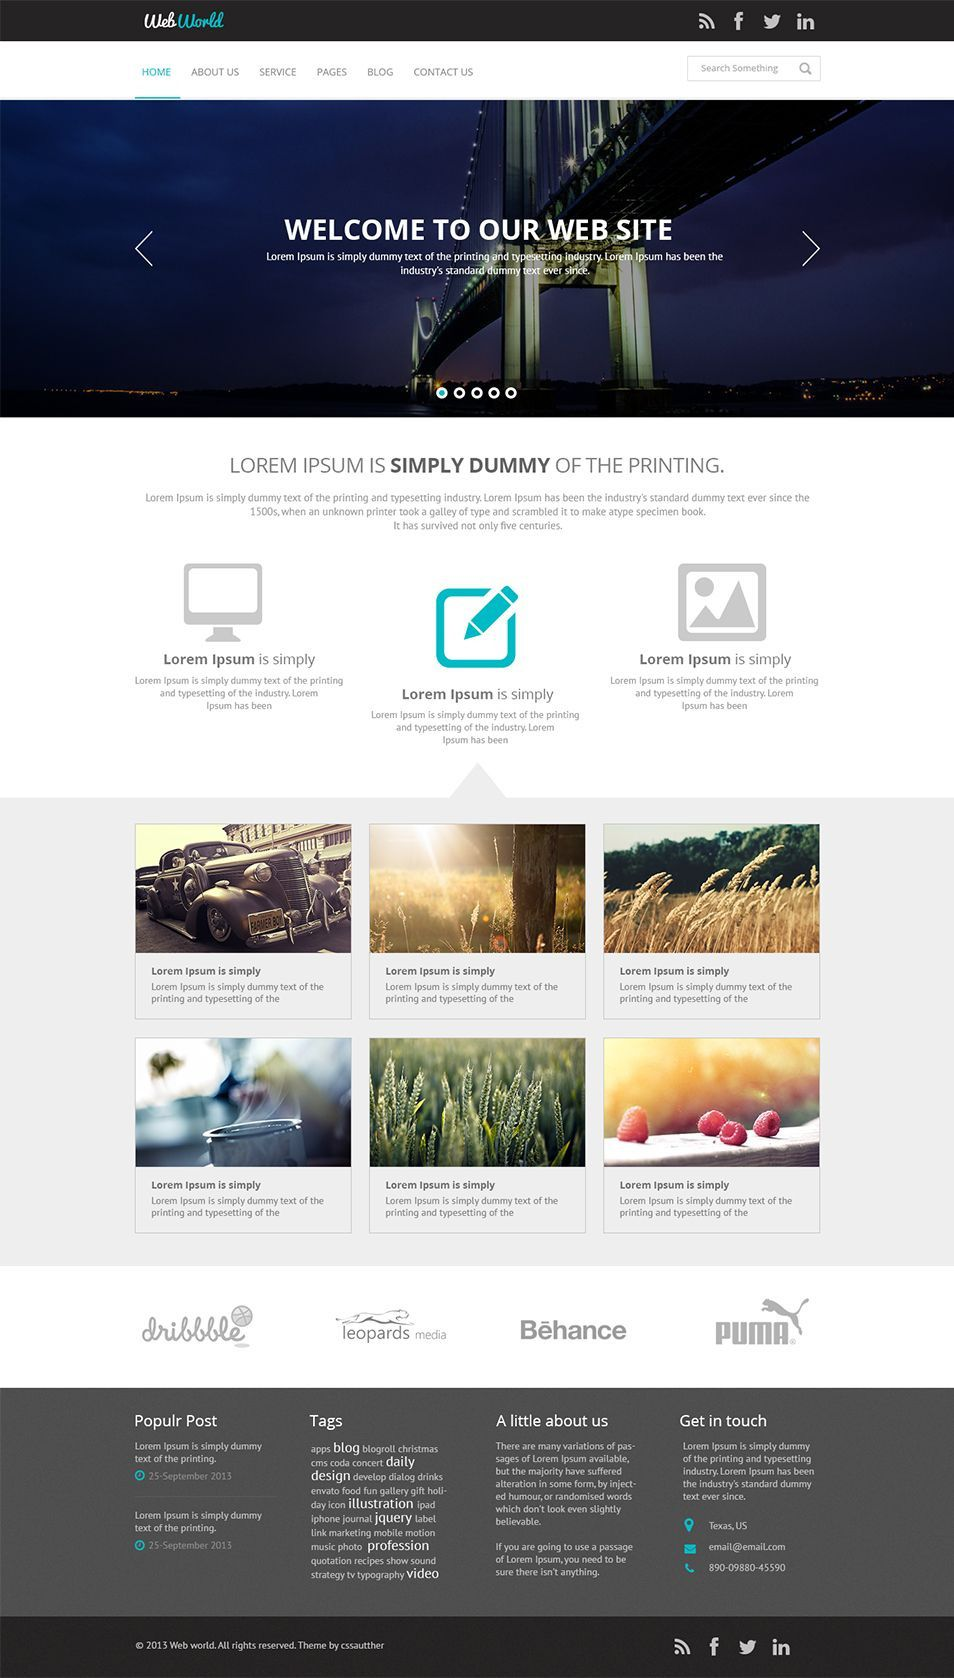 004 Sensational Free Busines Website Template High Definition  Templates Wordpres For Small Dreamweaver Download Html5 With Css3 JqueryFull